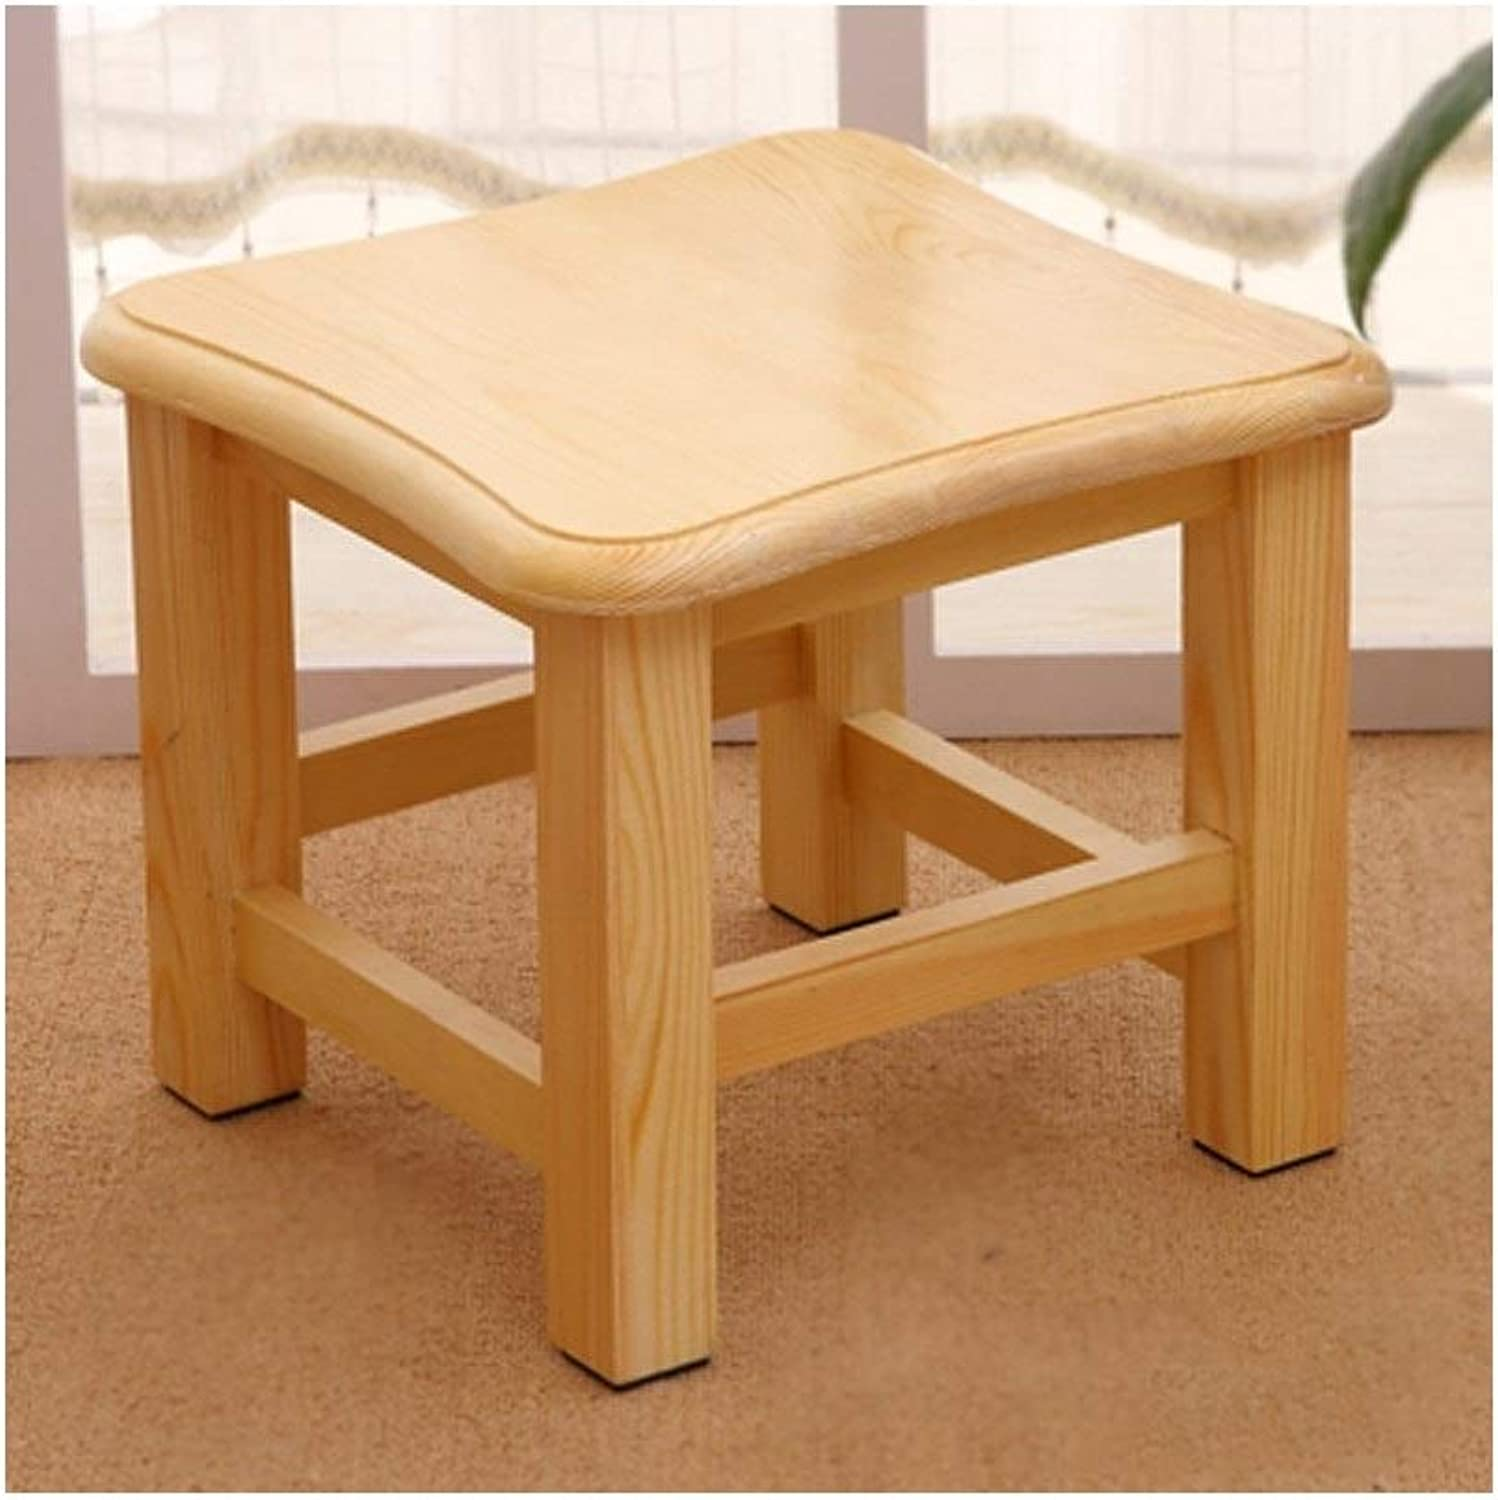 European Chair shoes Bench Vintage Creative Small Stool Simple Home Solid Wood Stool (color   D)